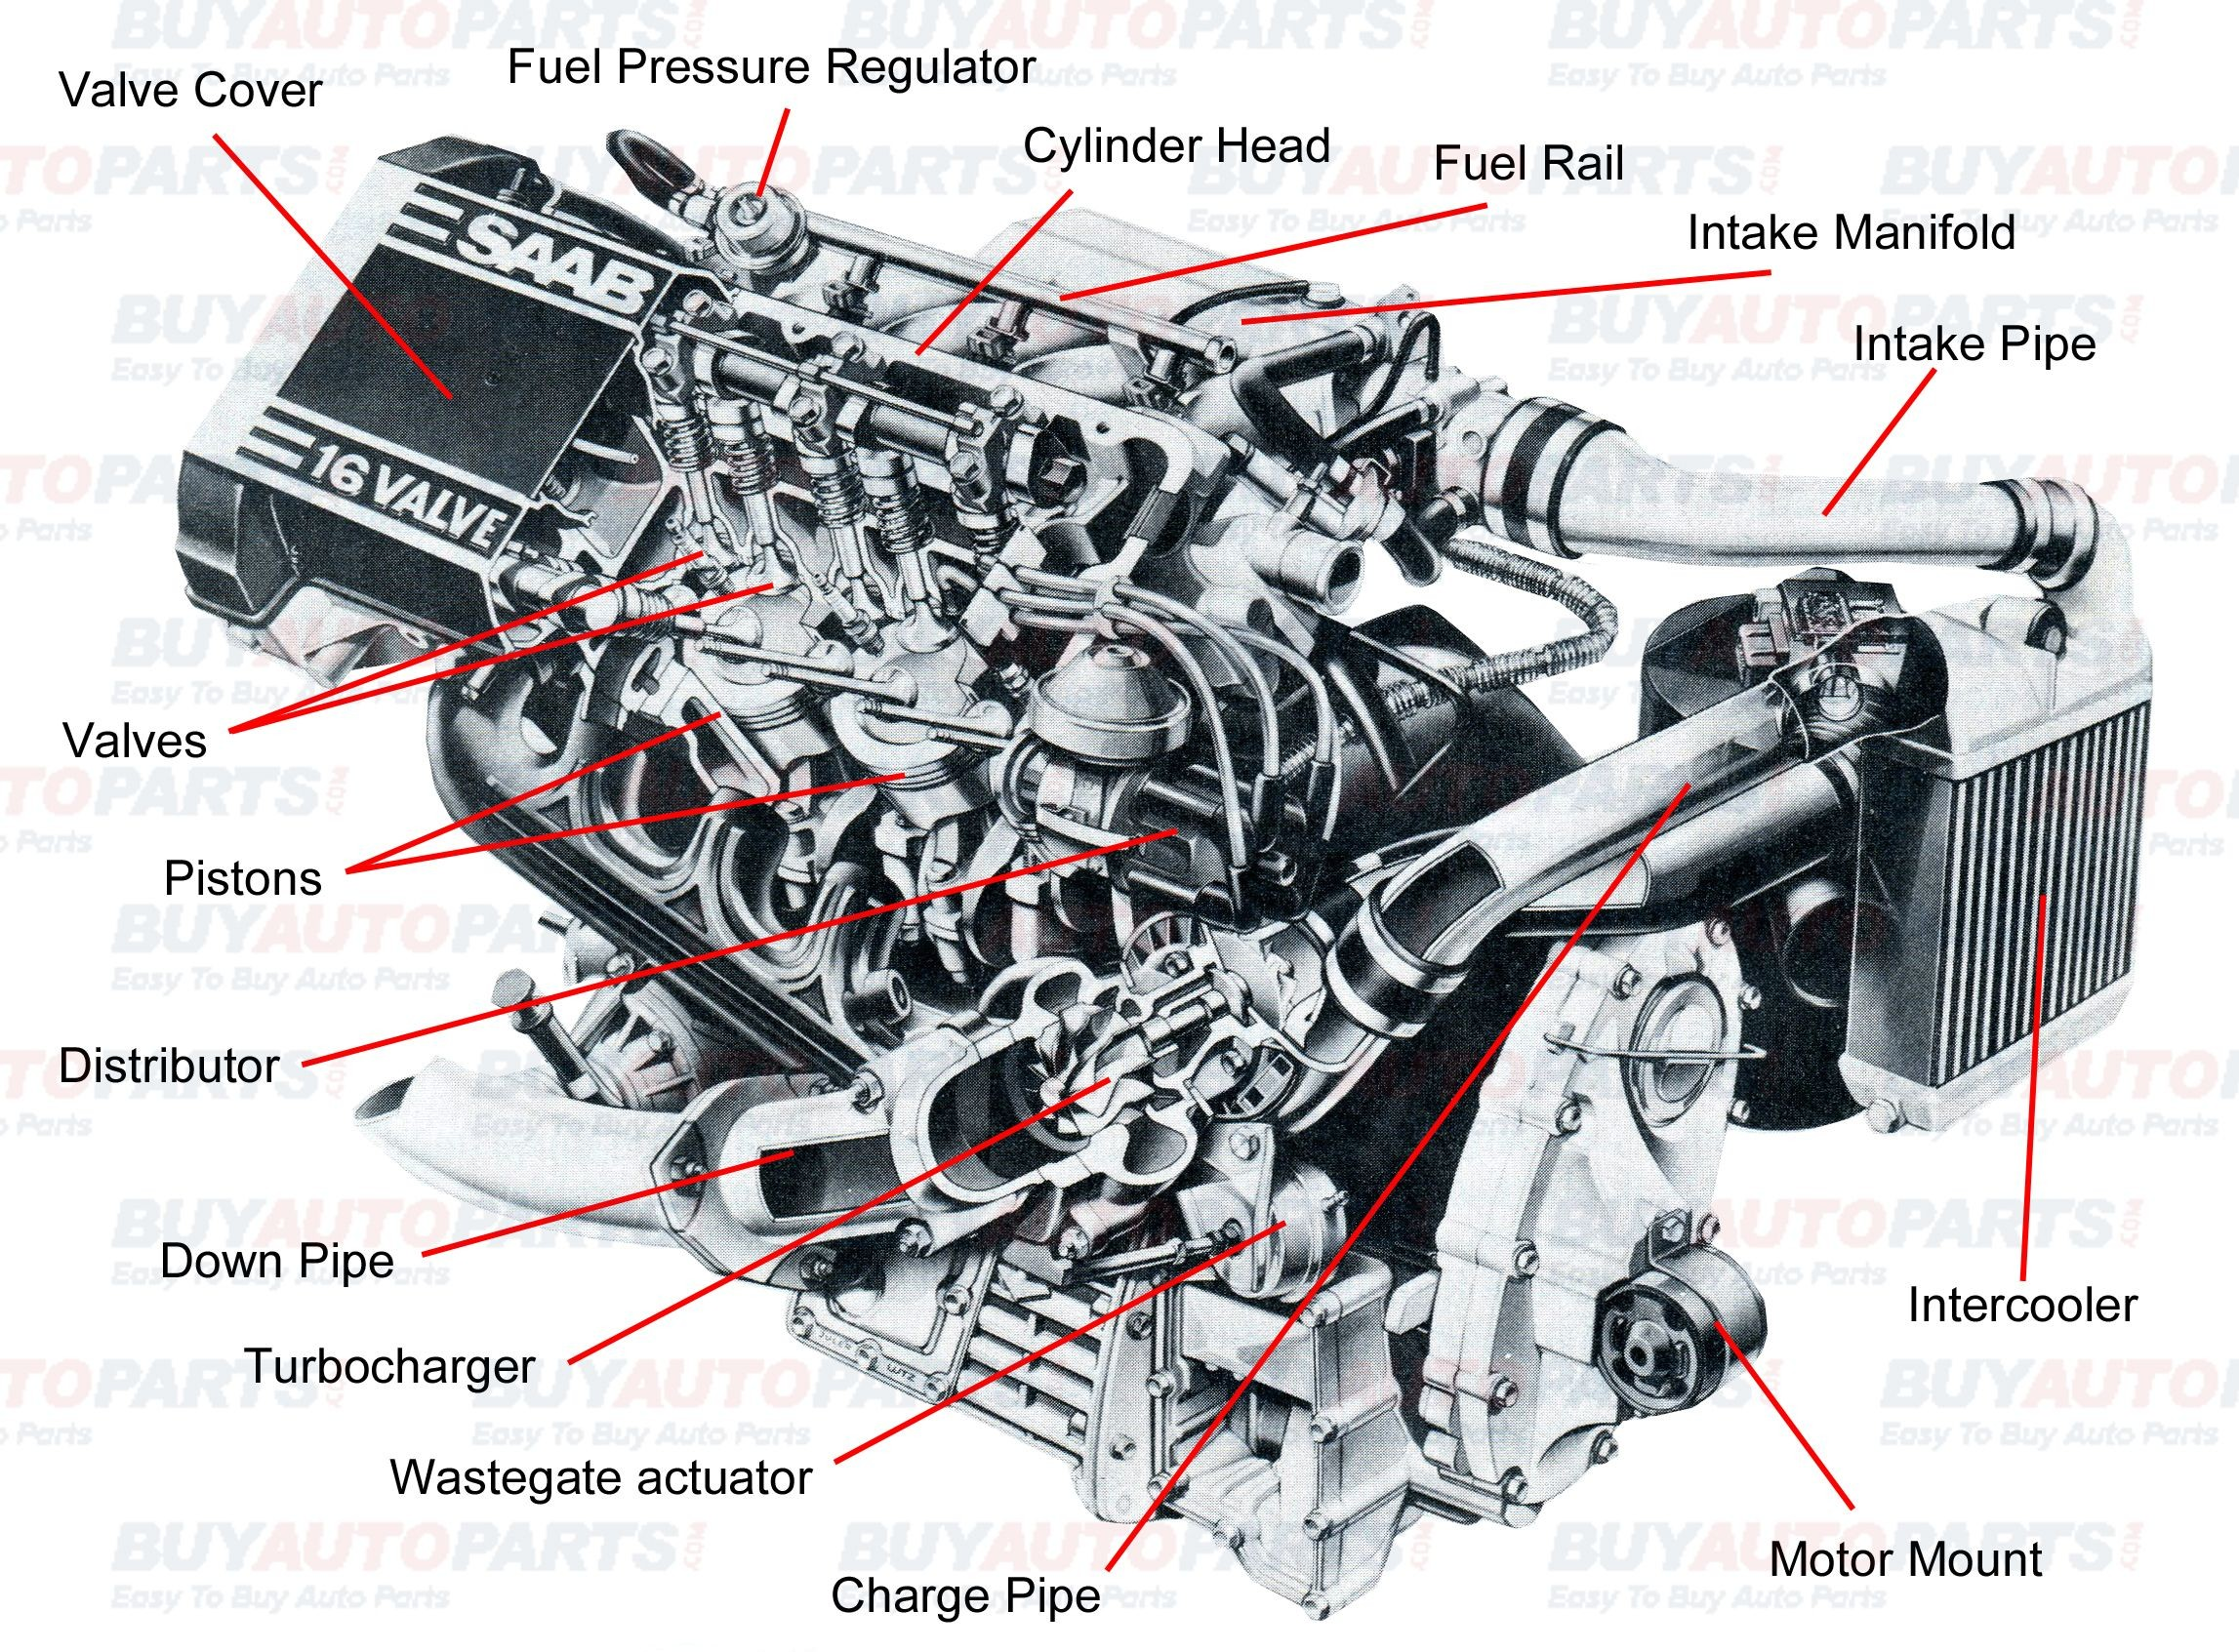 Brake Diagram Car All Internal Bustion Engines Have the Same Basic Ponents the Of Brake Diagram Car